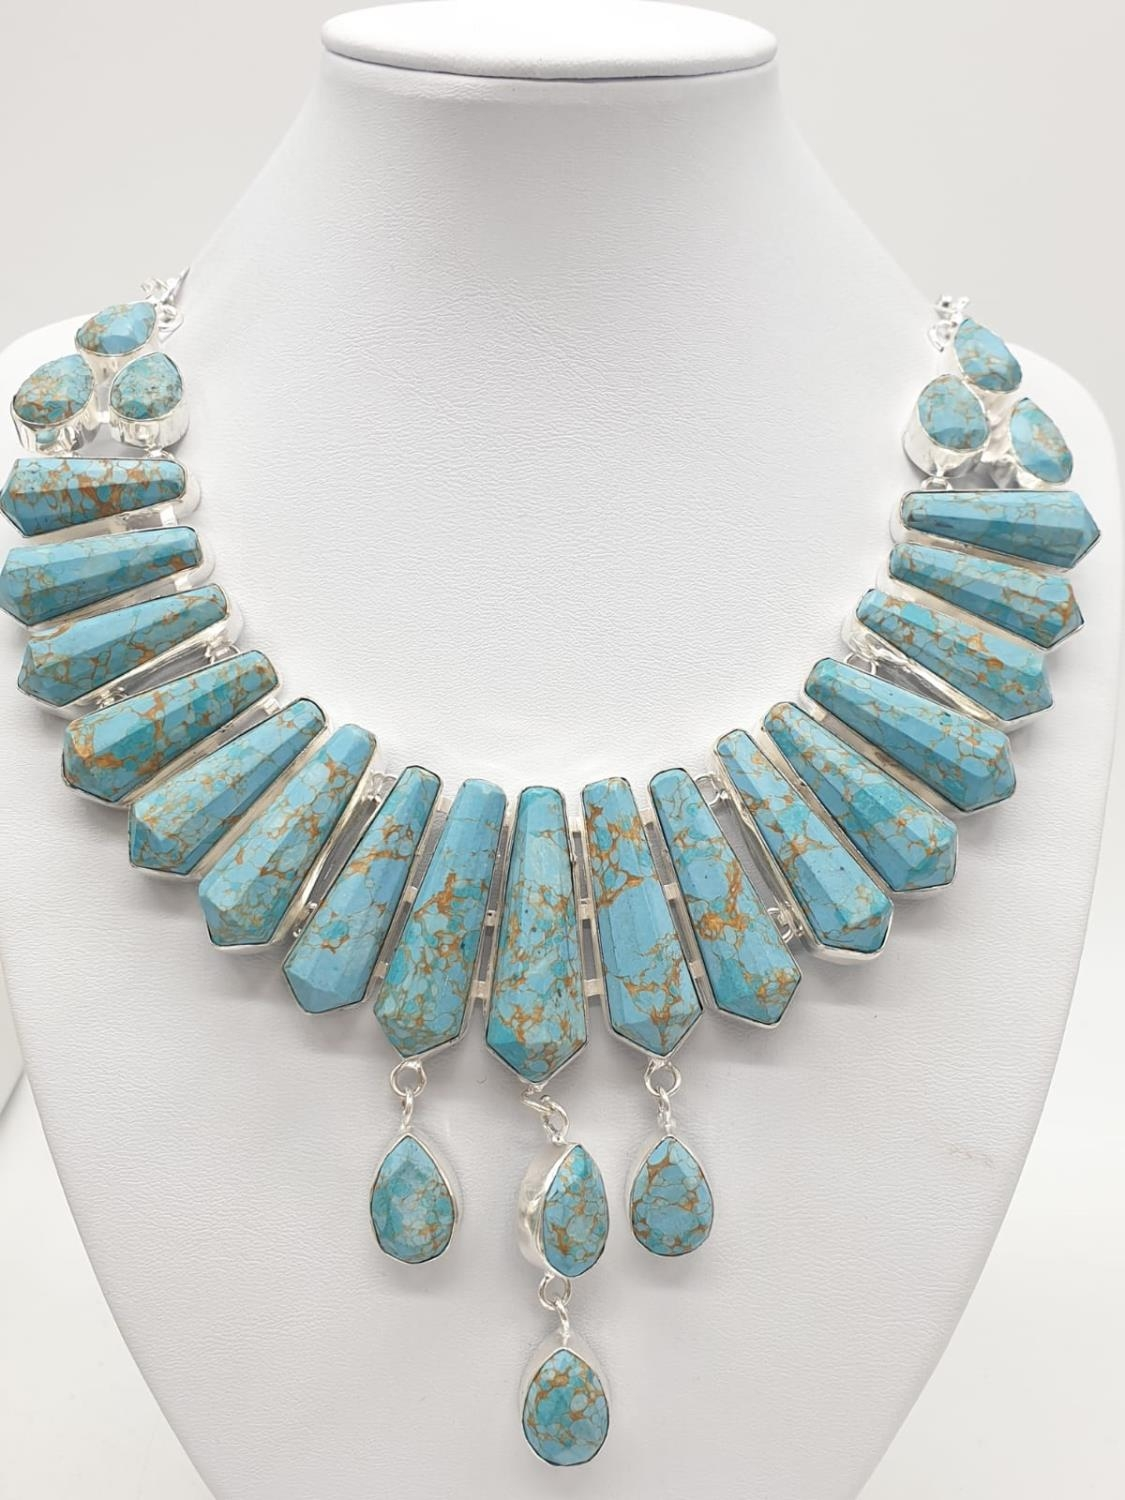 A Pharaonic style necklace and earrings set with light brown-gold veined turquoise obelisks and - Image 5 of 24